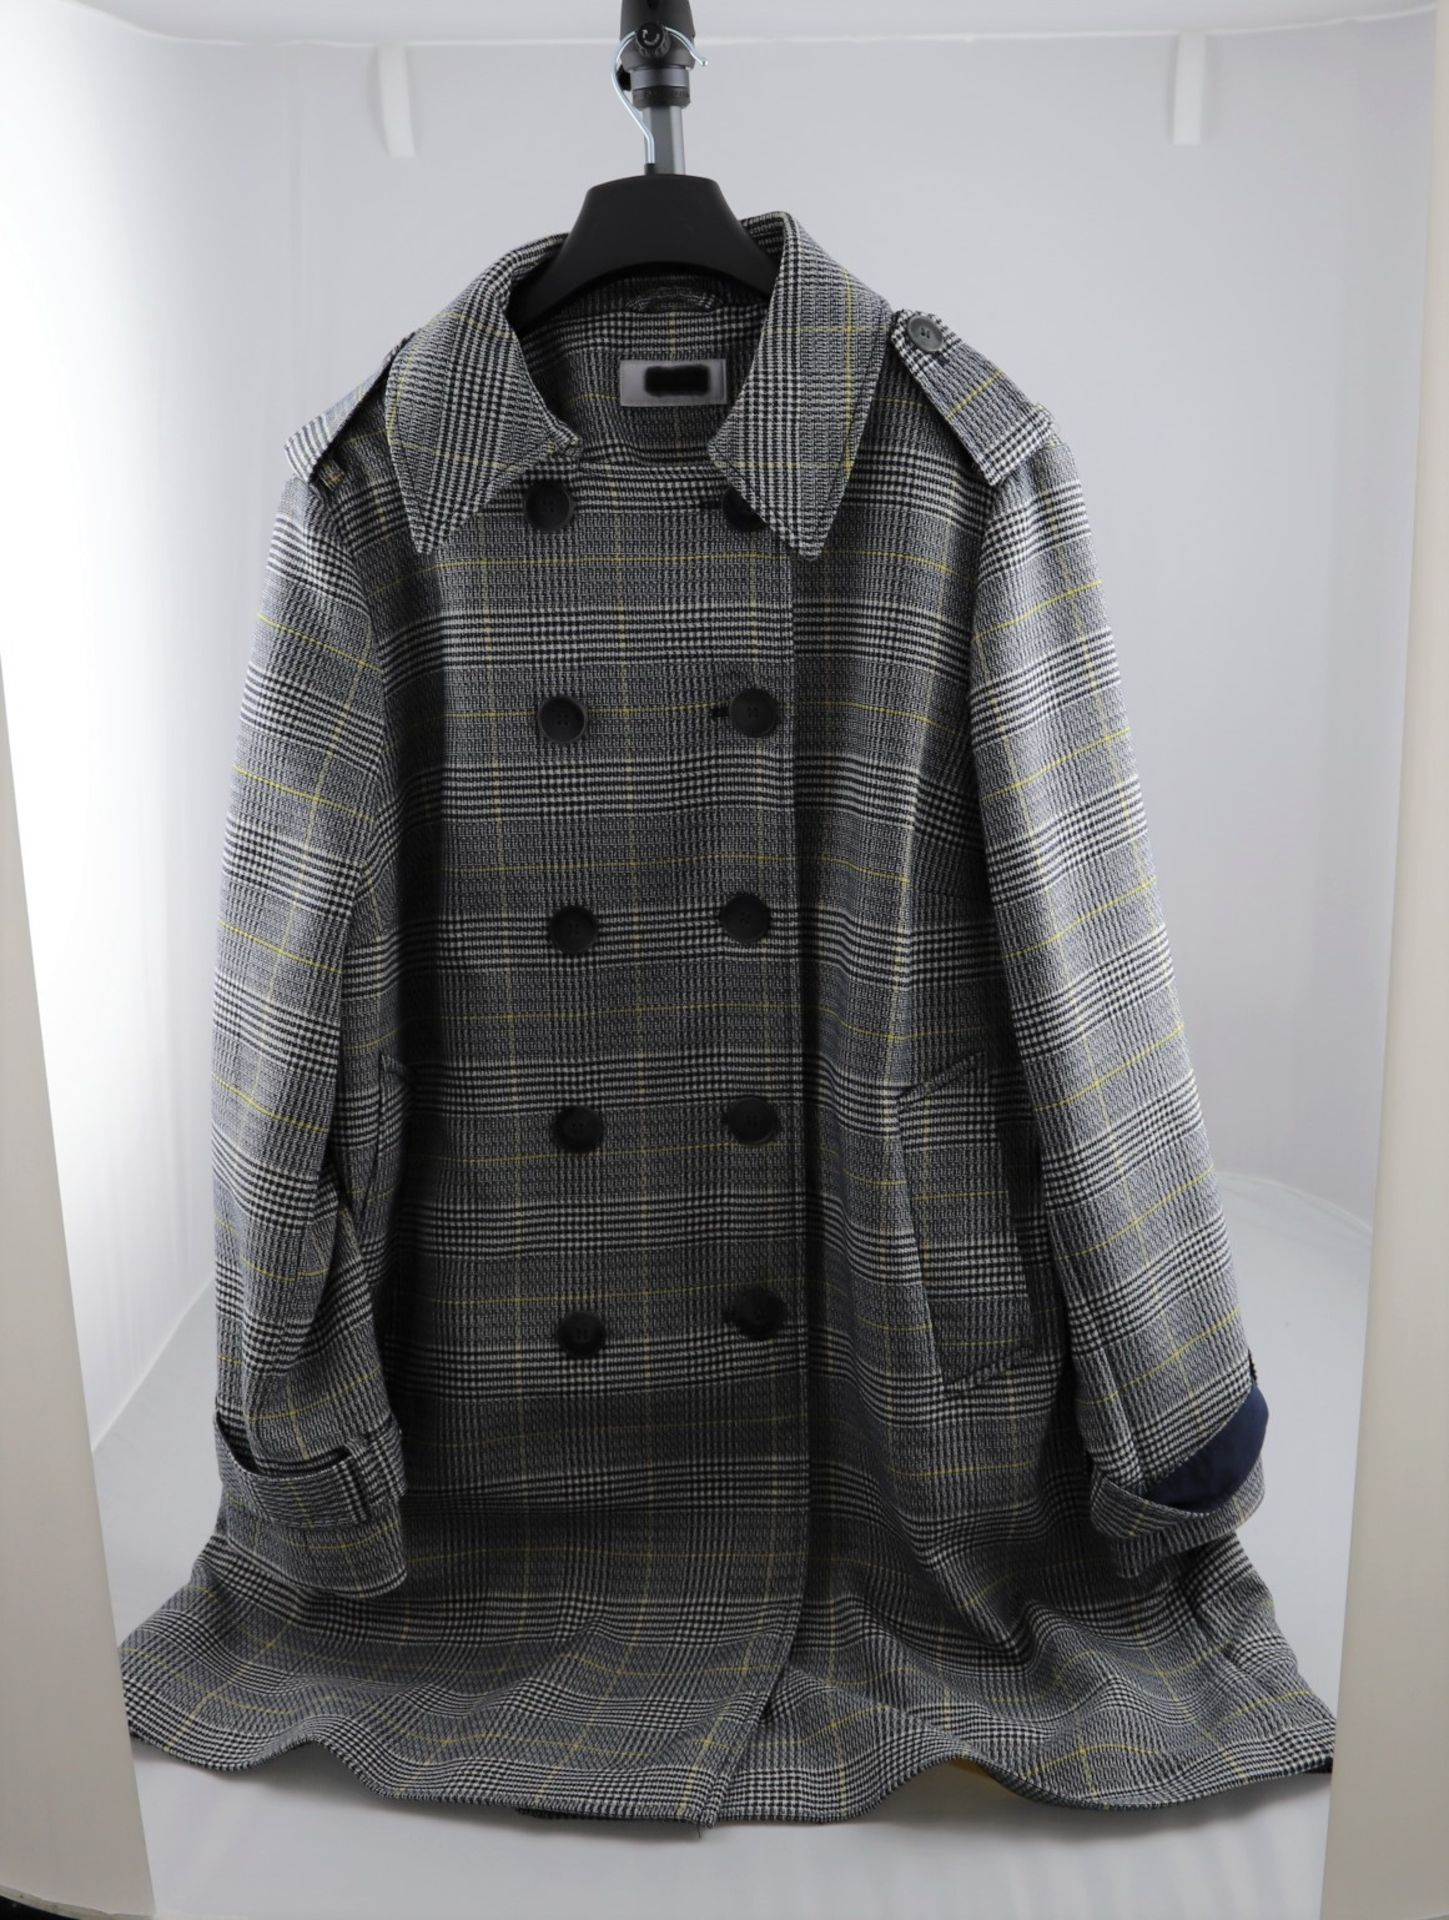 1 x mixed pallet = 235 items of Grade A M&S Womenswear Clothing. Total RRP £5345.50 - Image 9 of 11